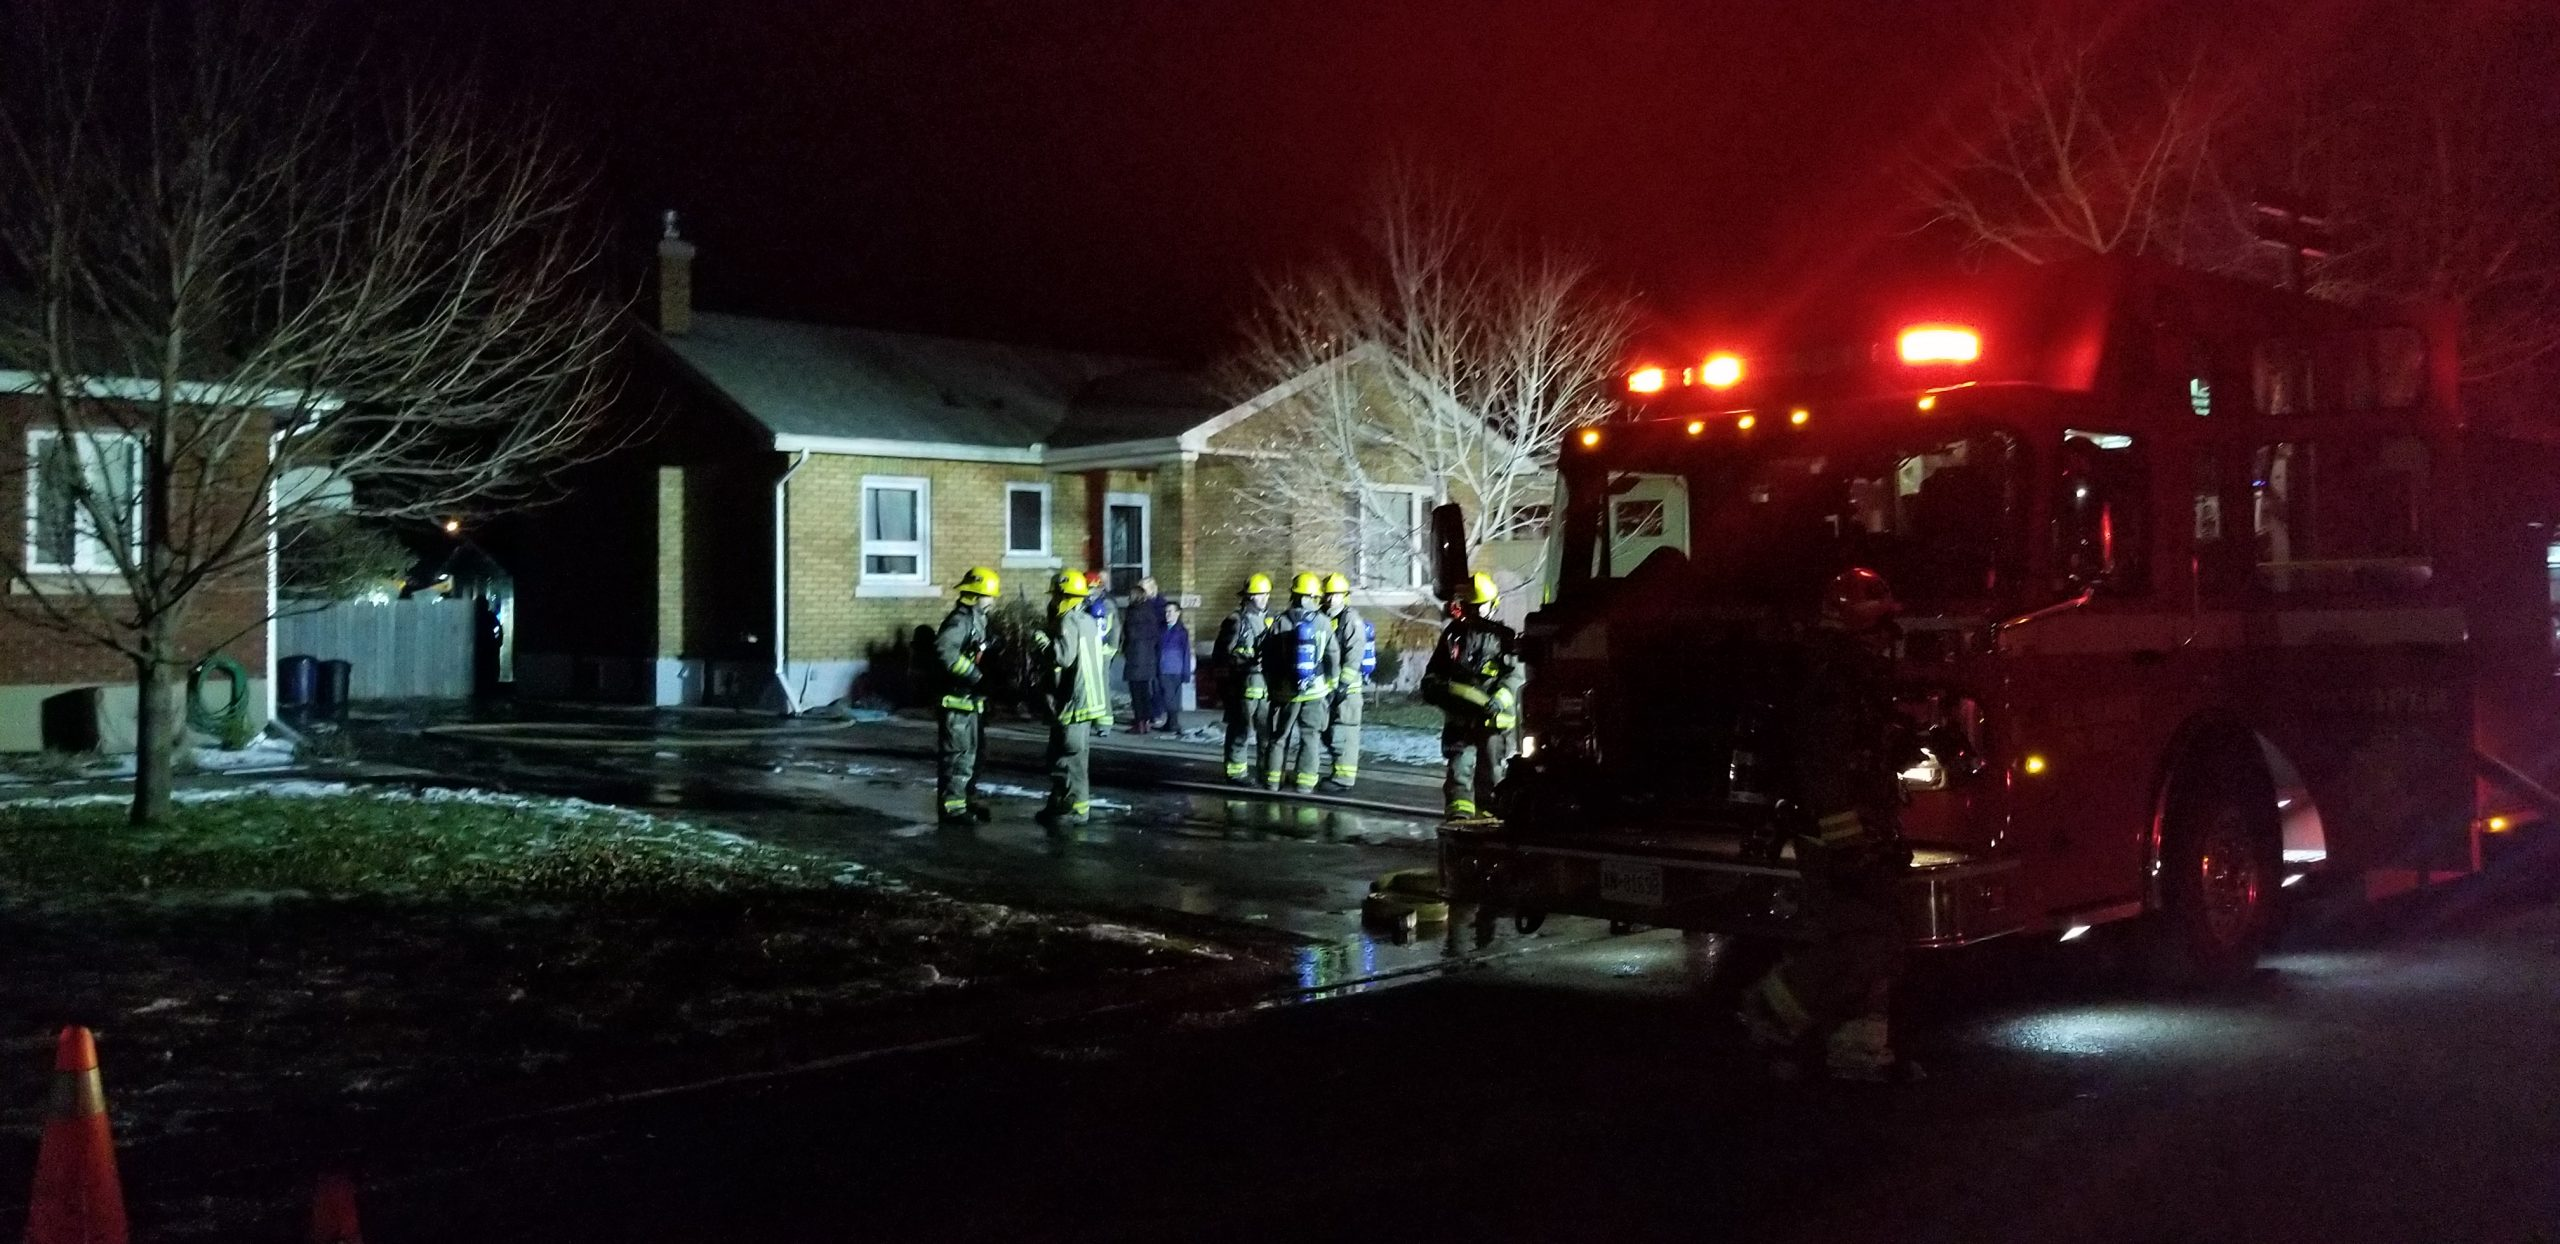 Gas/Propane Tanks Explode In Fire